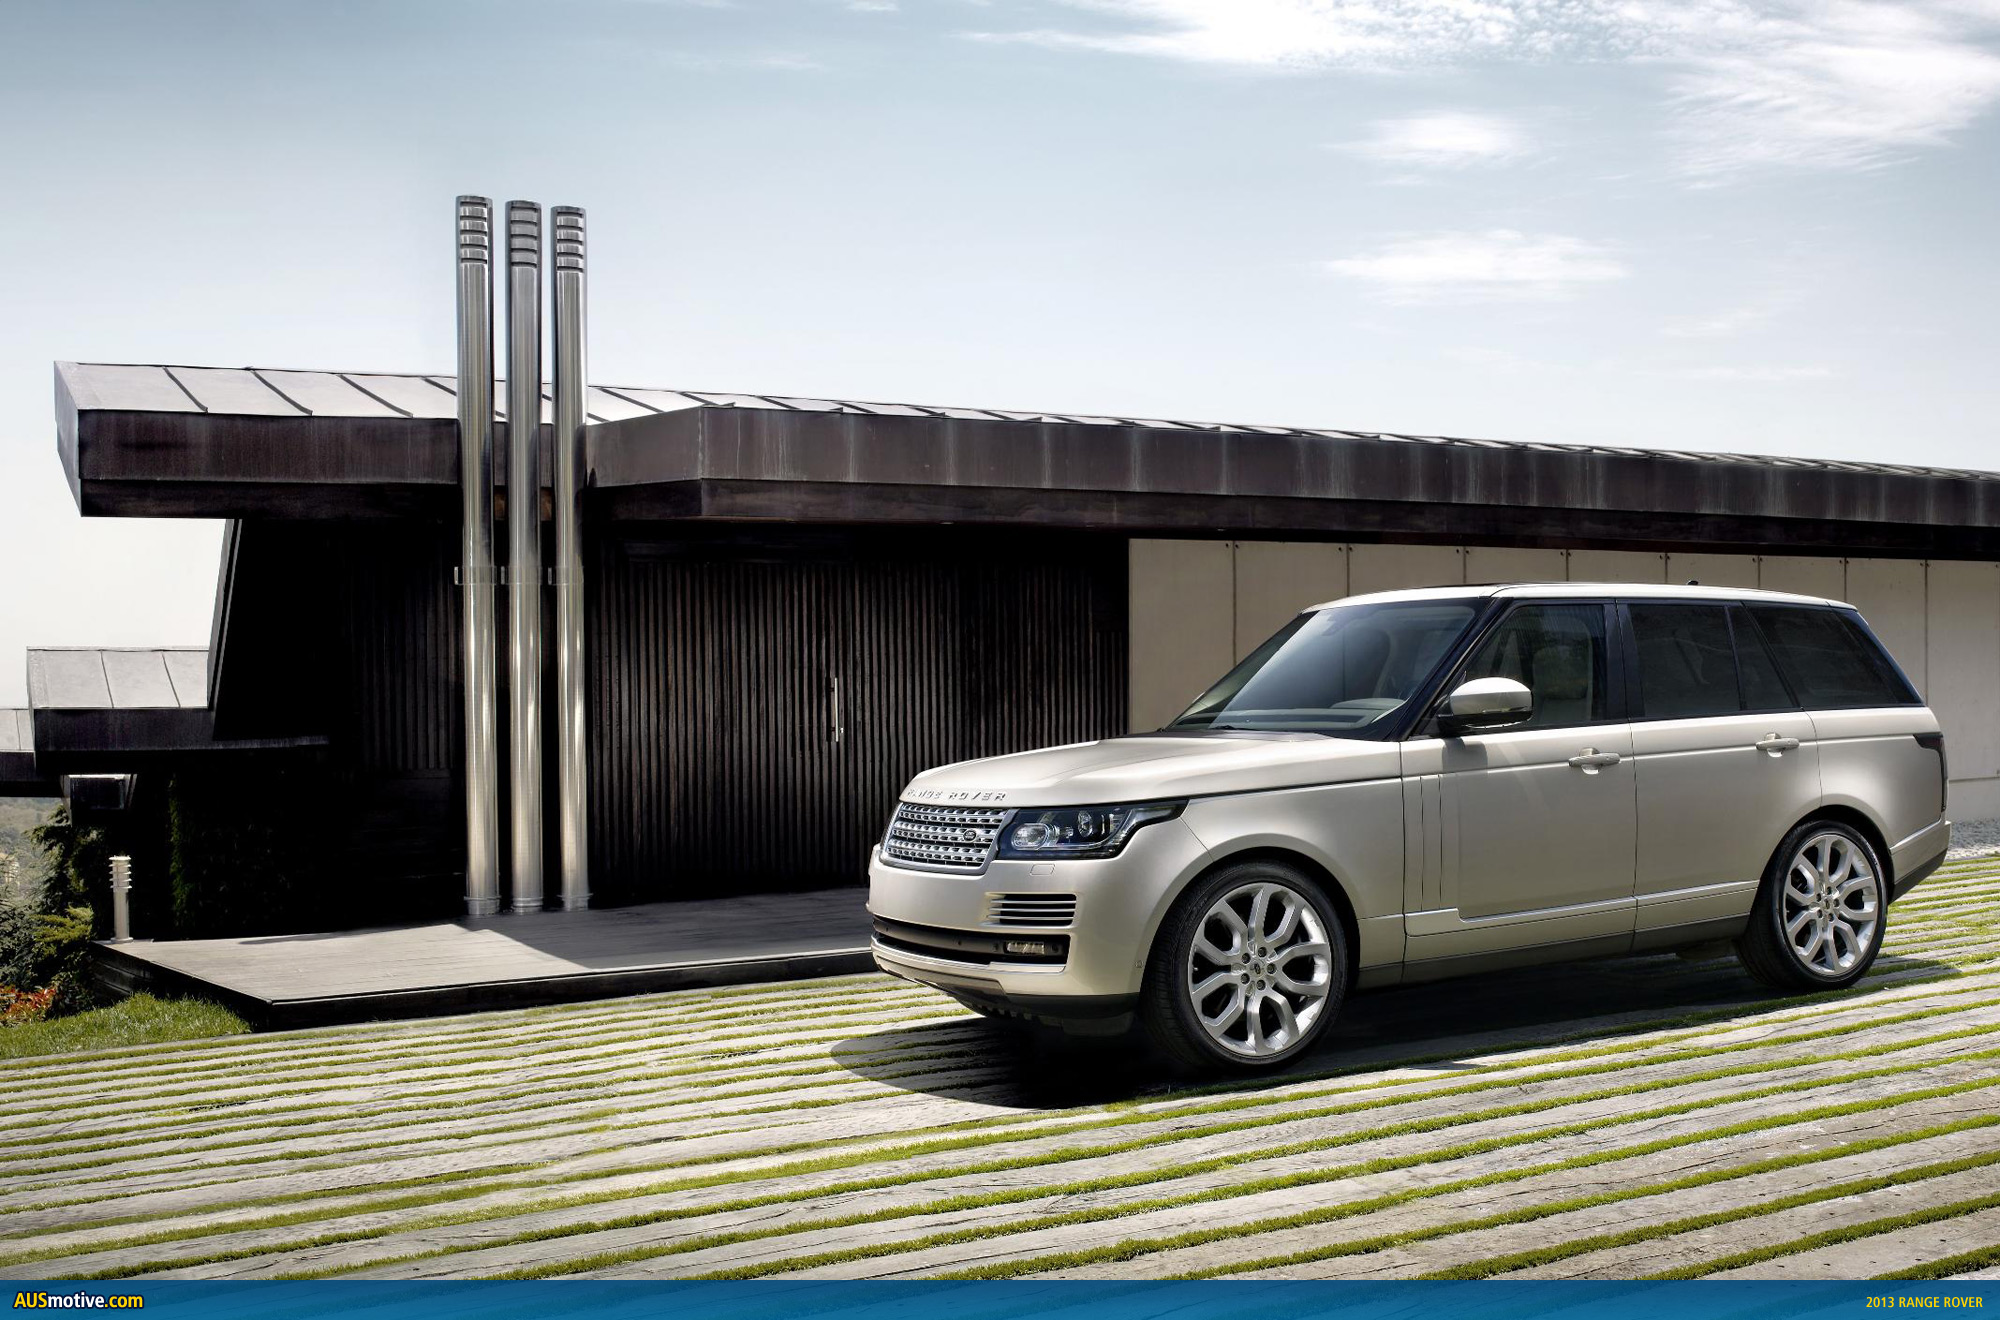 Range Rover officially previewed High Resolution Image Desktop Backgrounds